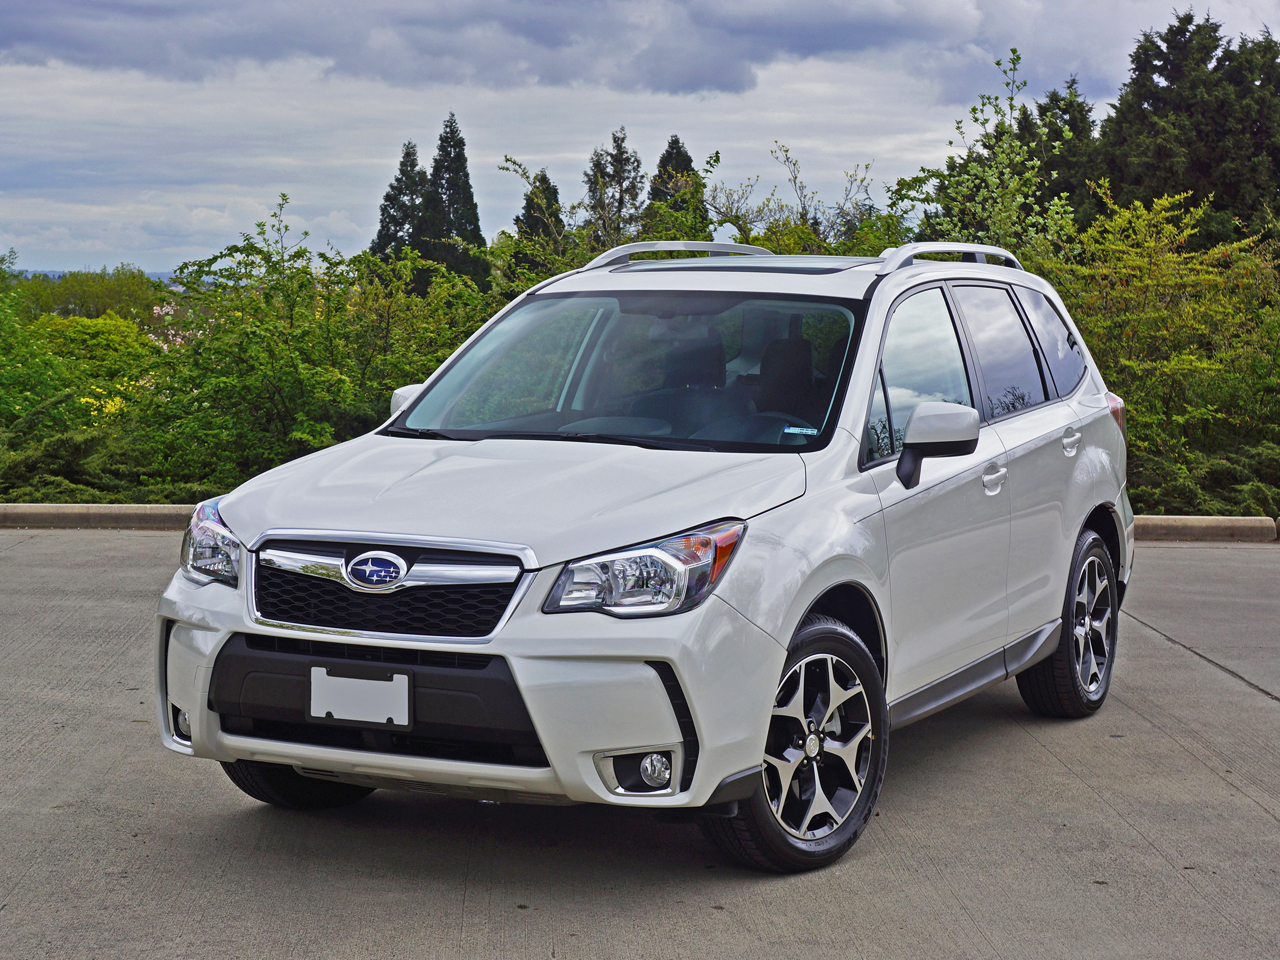 2016 subaru forester 2 0xt touring road test review. Black Bedroom Furniture Sets. Home Design Ideas